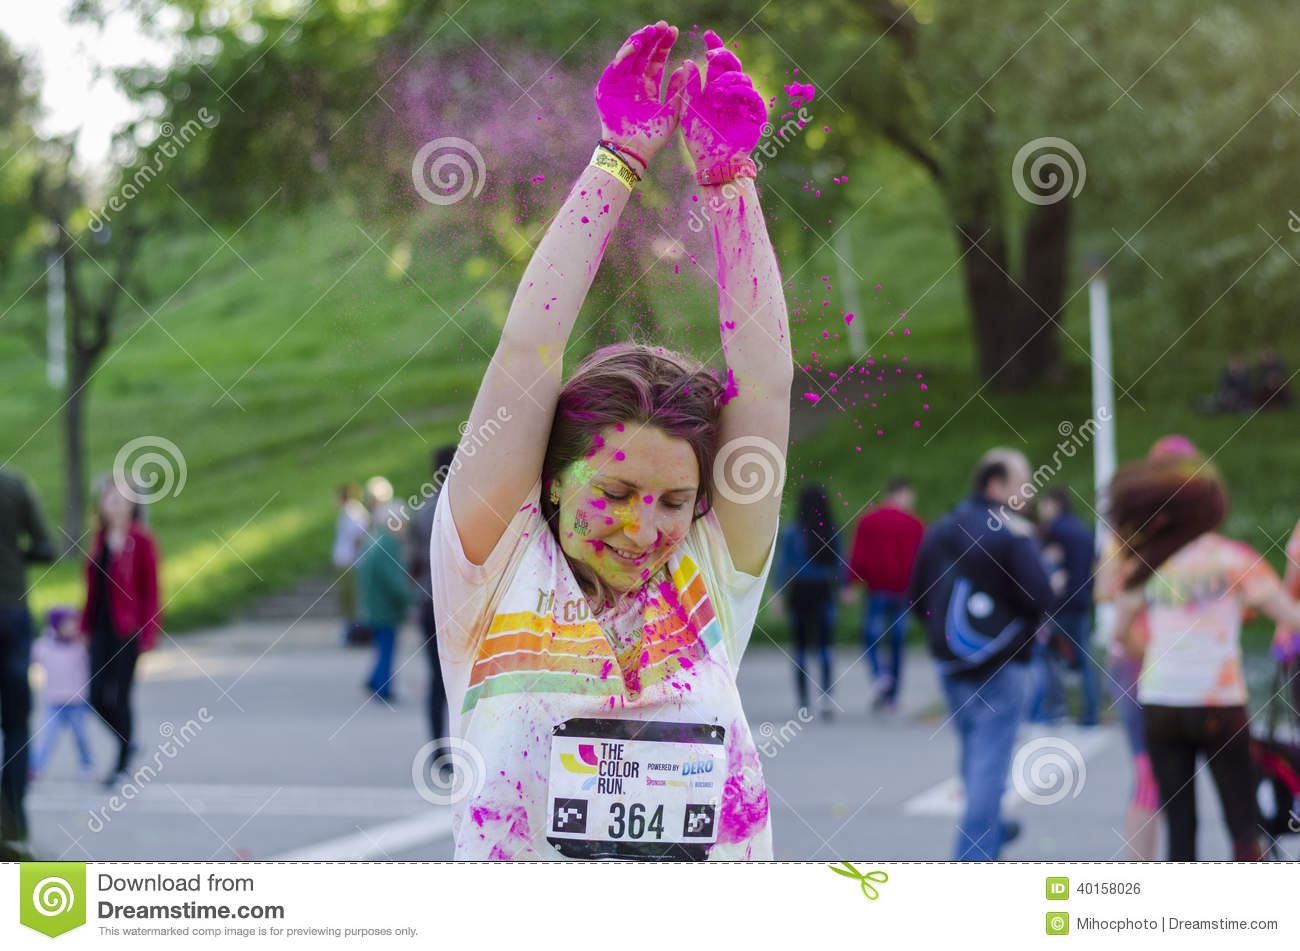 Pink powder falling on girl's head at Color Run